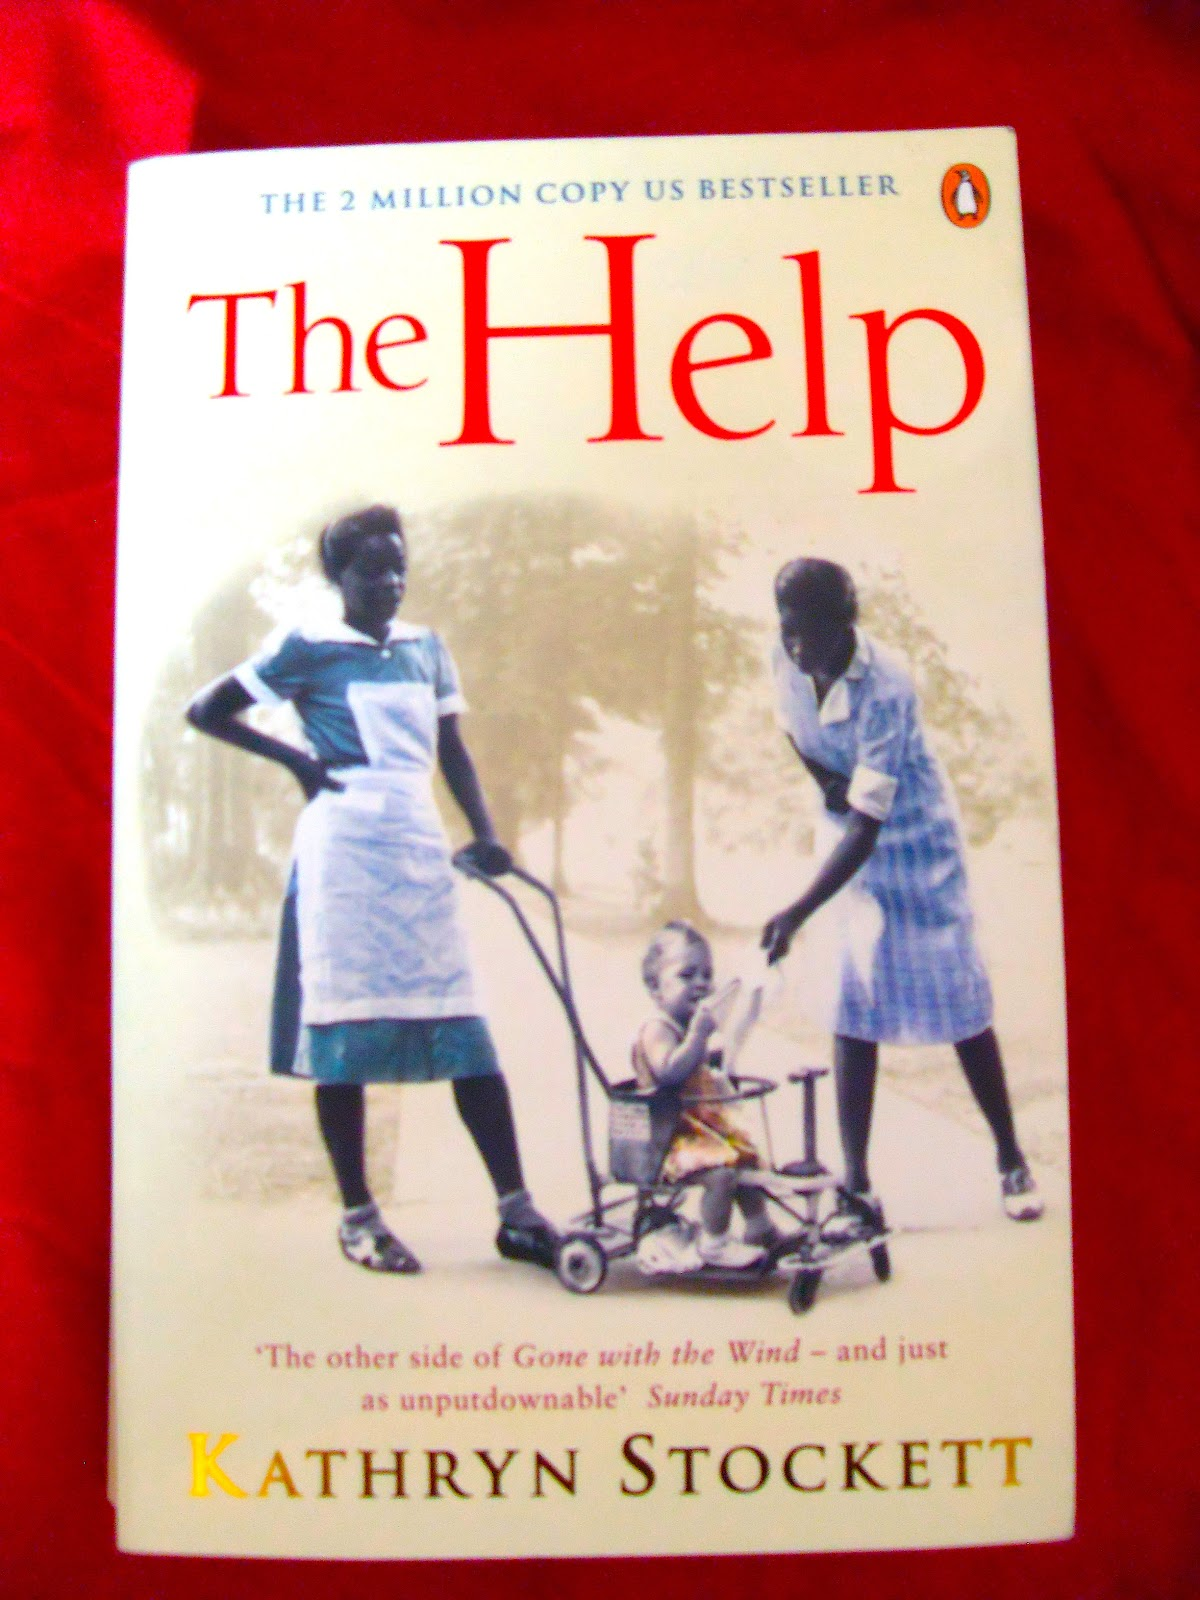 essay on the help by kathryn stockett David petraeus doctoral dissertation essay questions help kathryn stockett admission to college economy with genetic food.